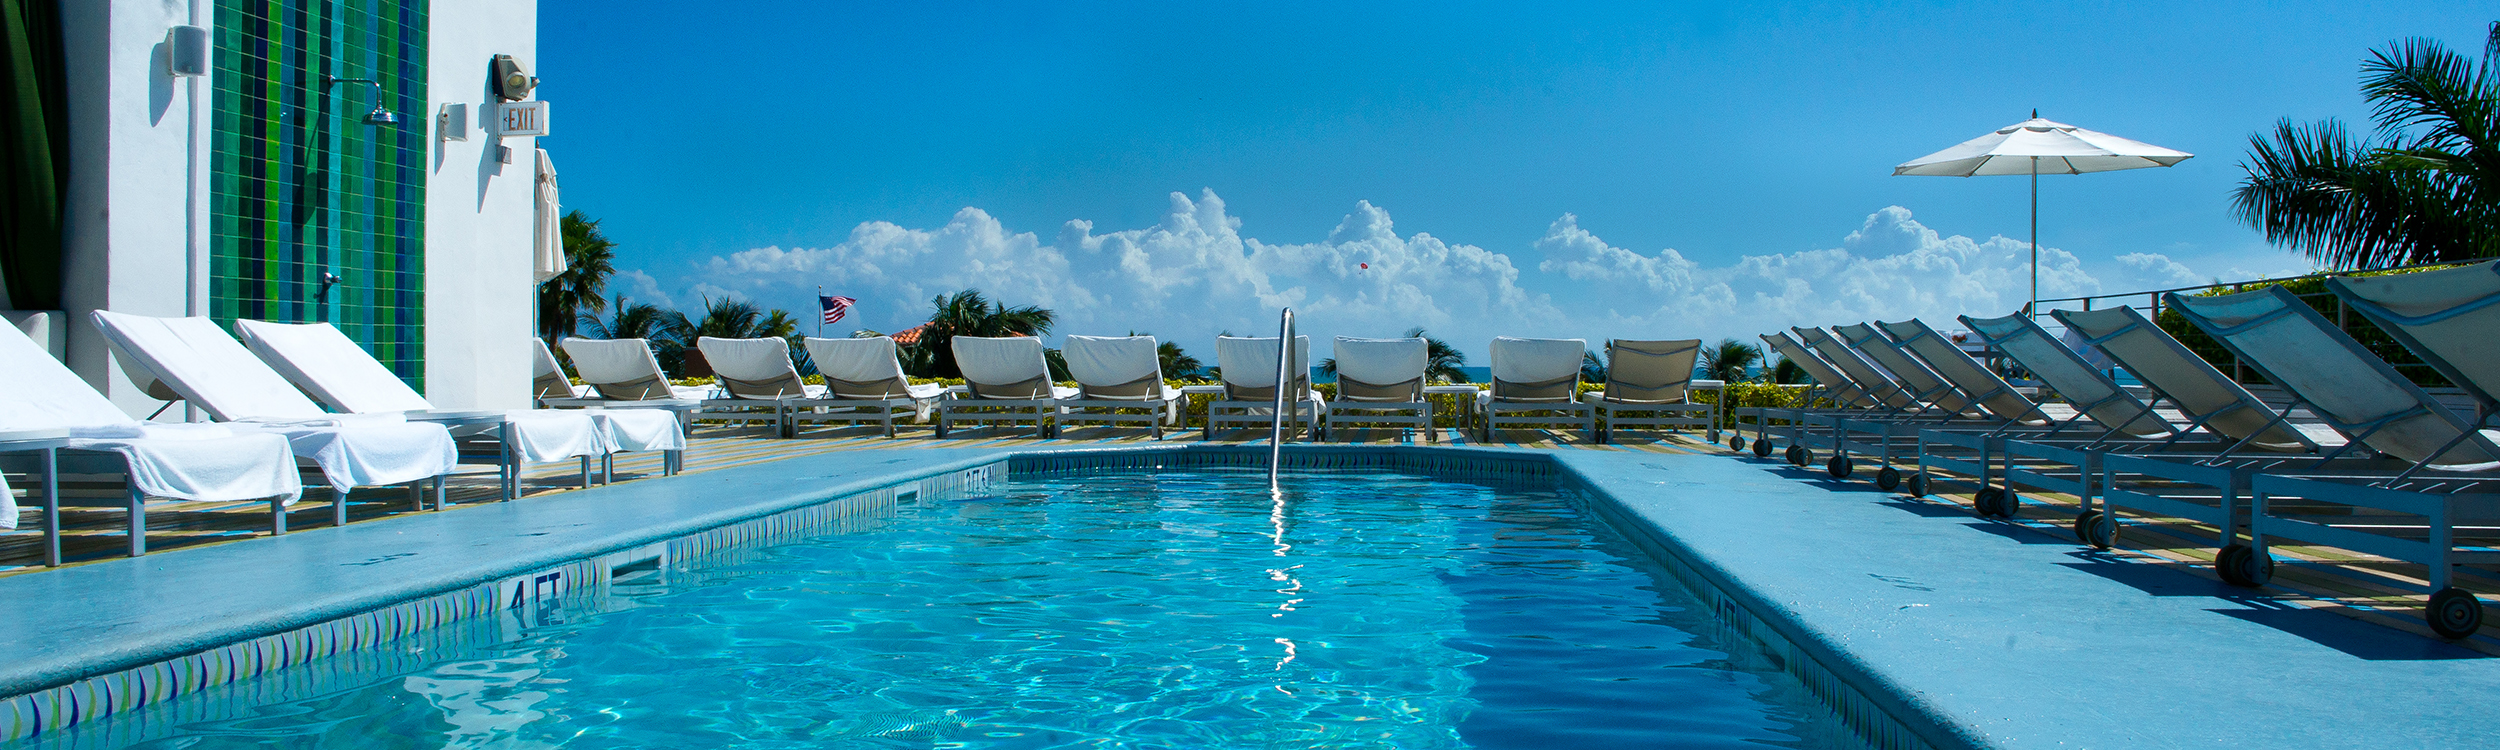 The Hotel Pool South Beach - web.jpg